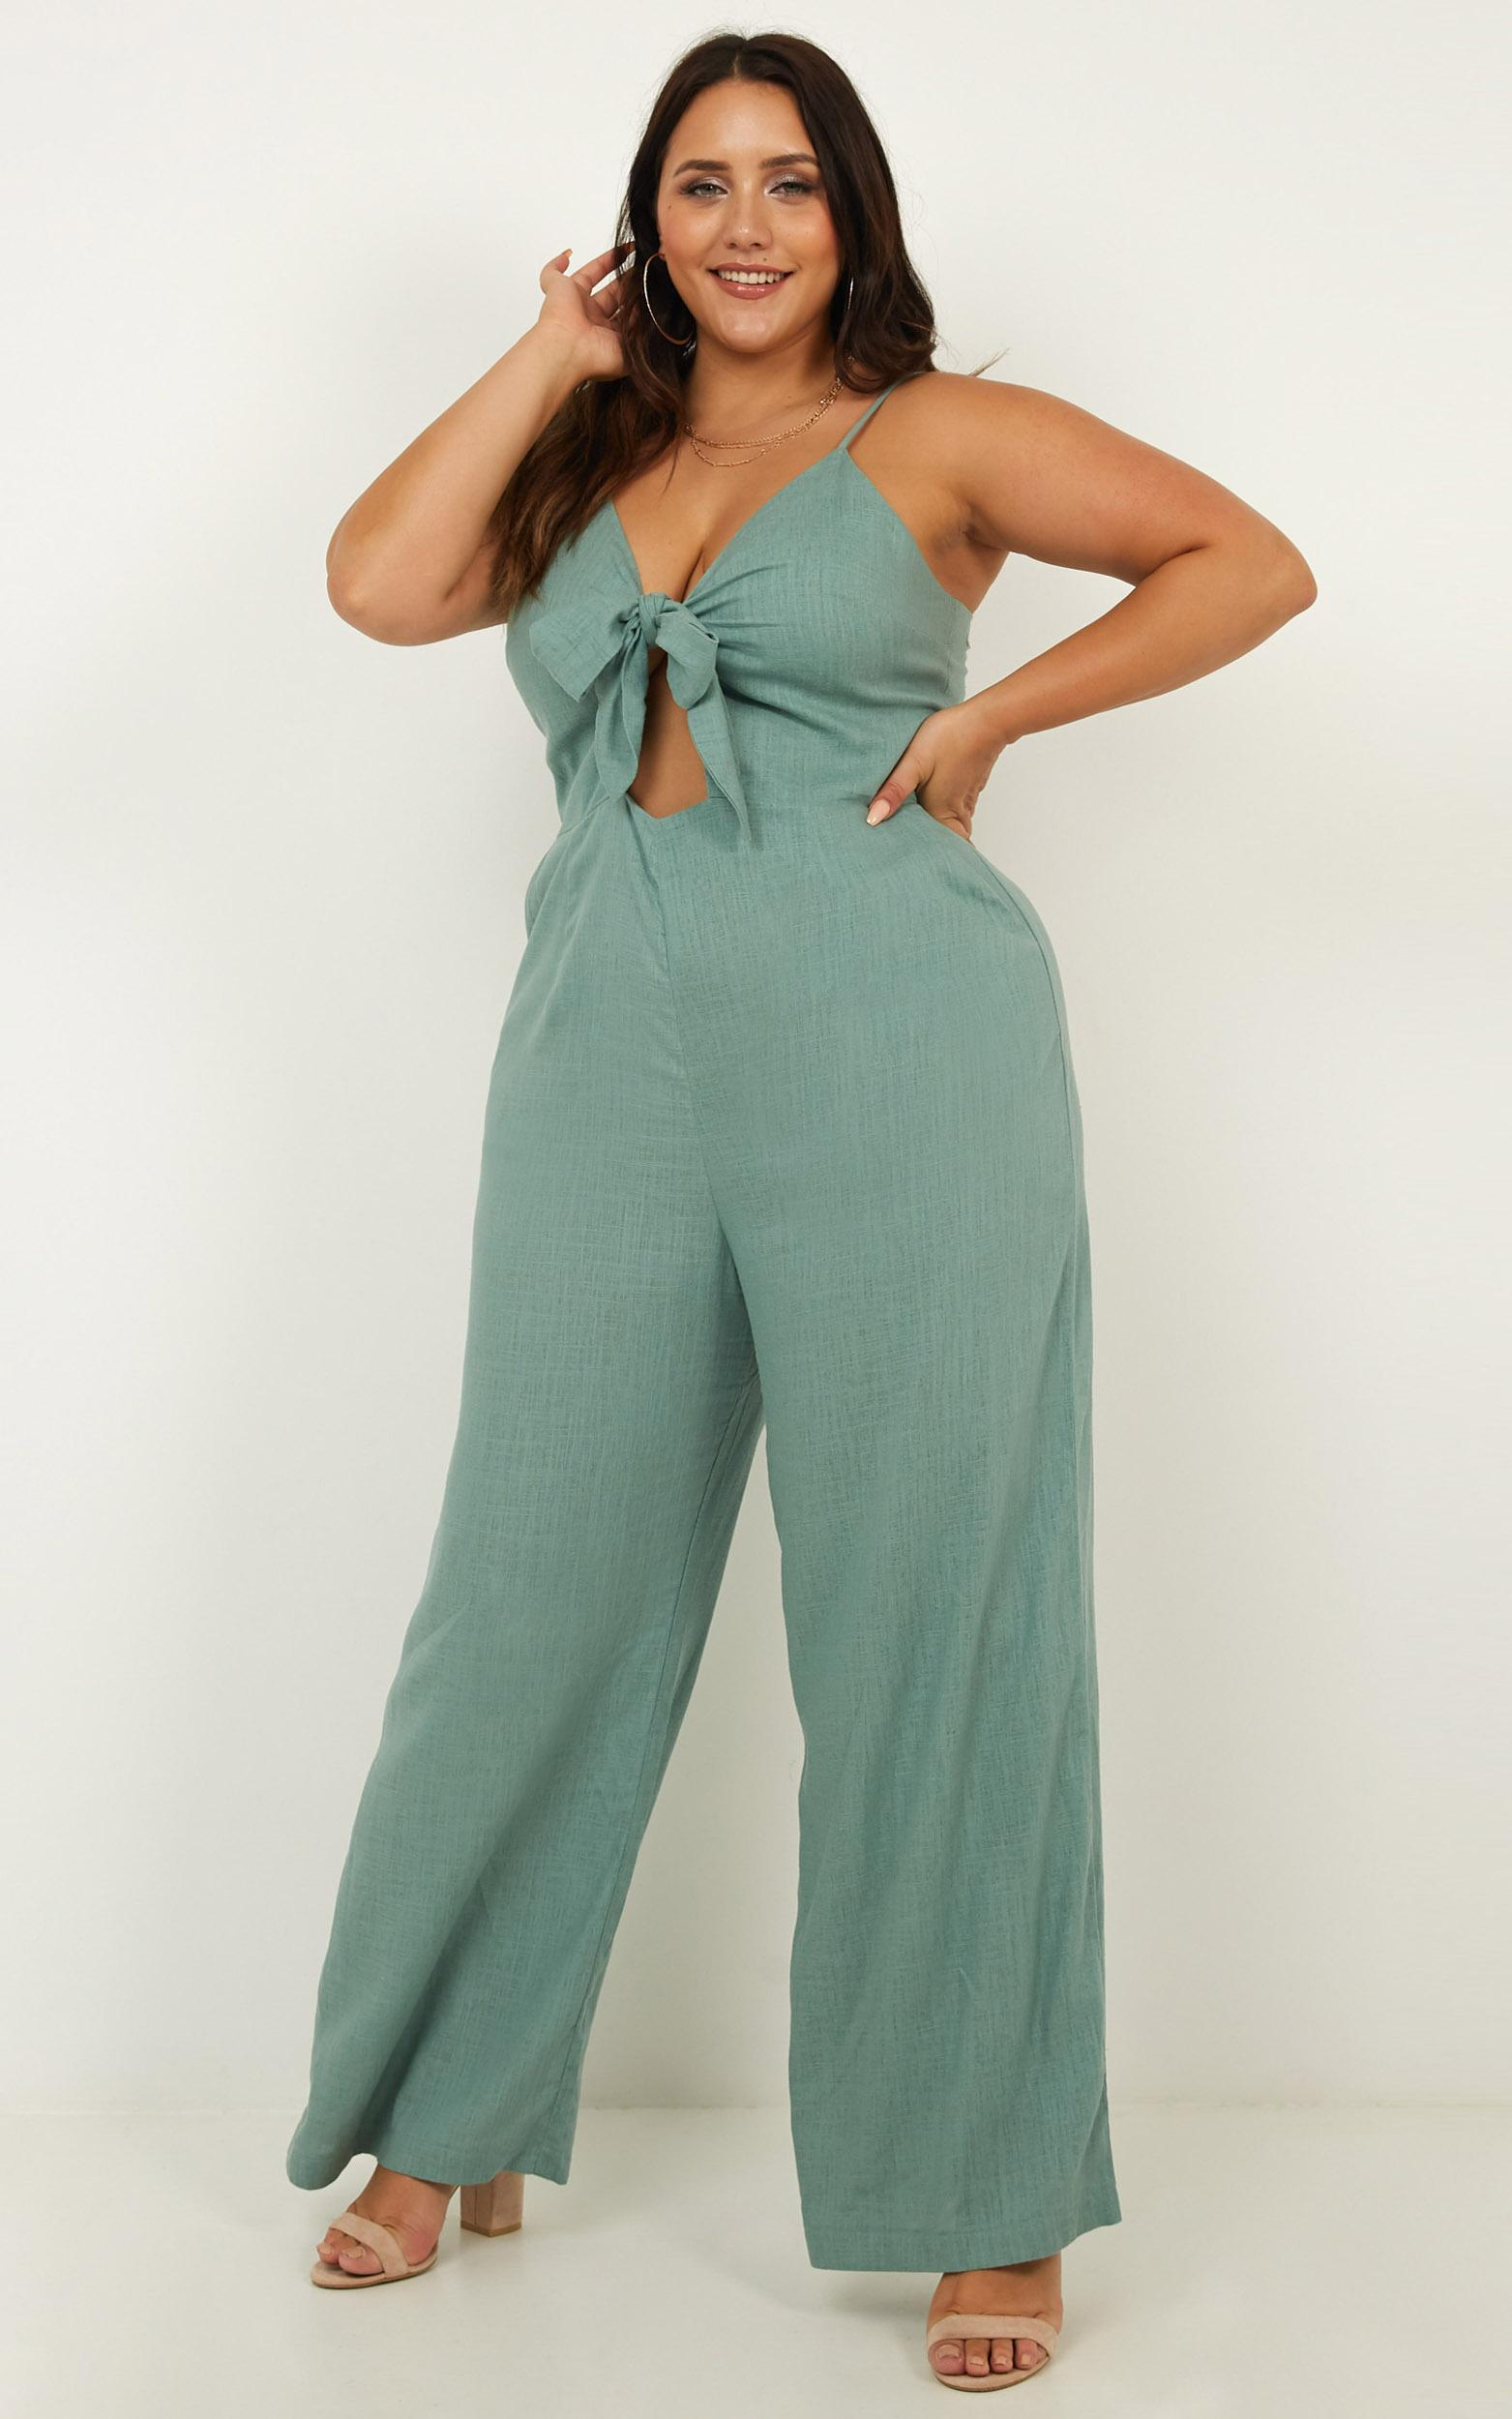 Lost And Loved Jumpsuit In sage linen look - 20 (XXXXL), Sage, hi-res image number null